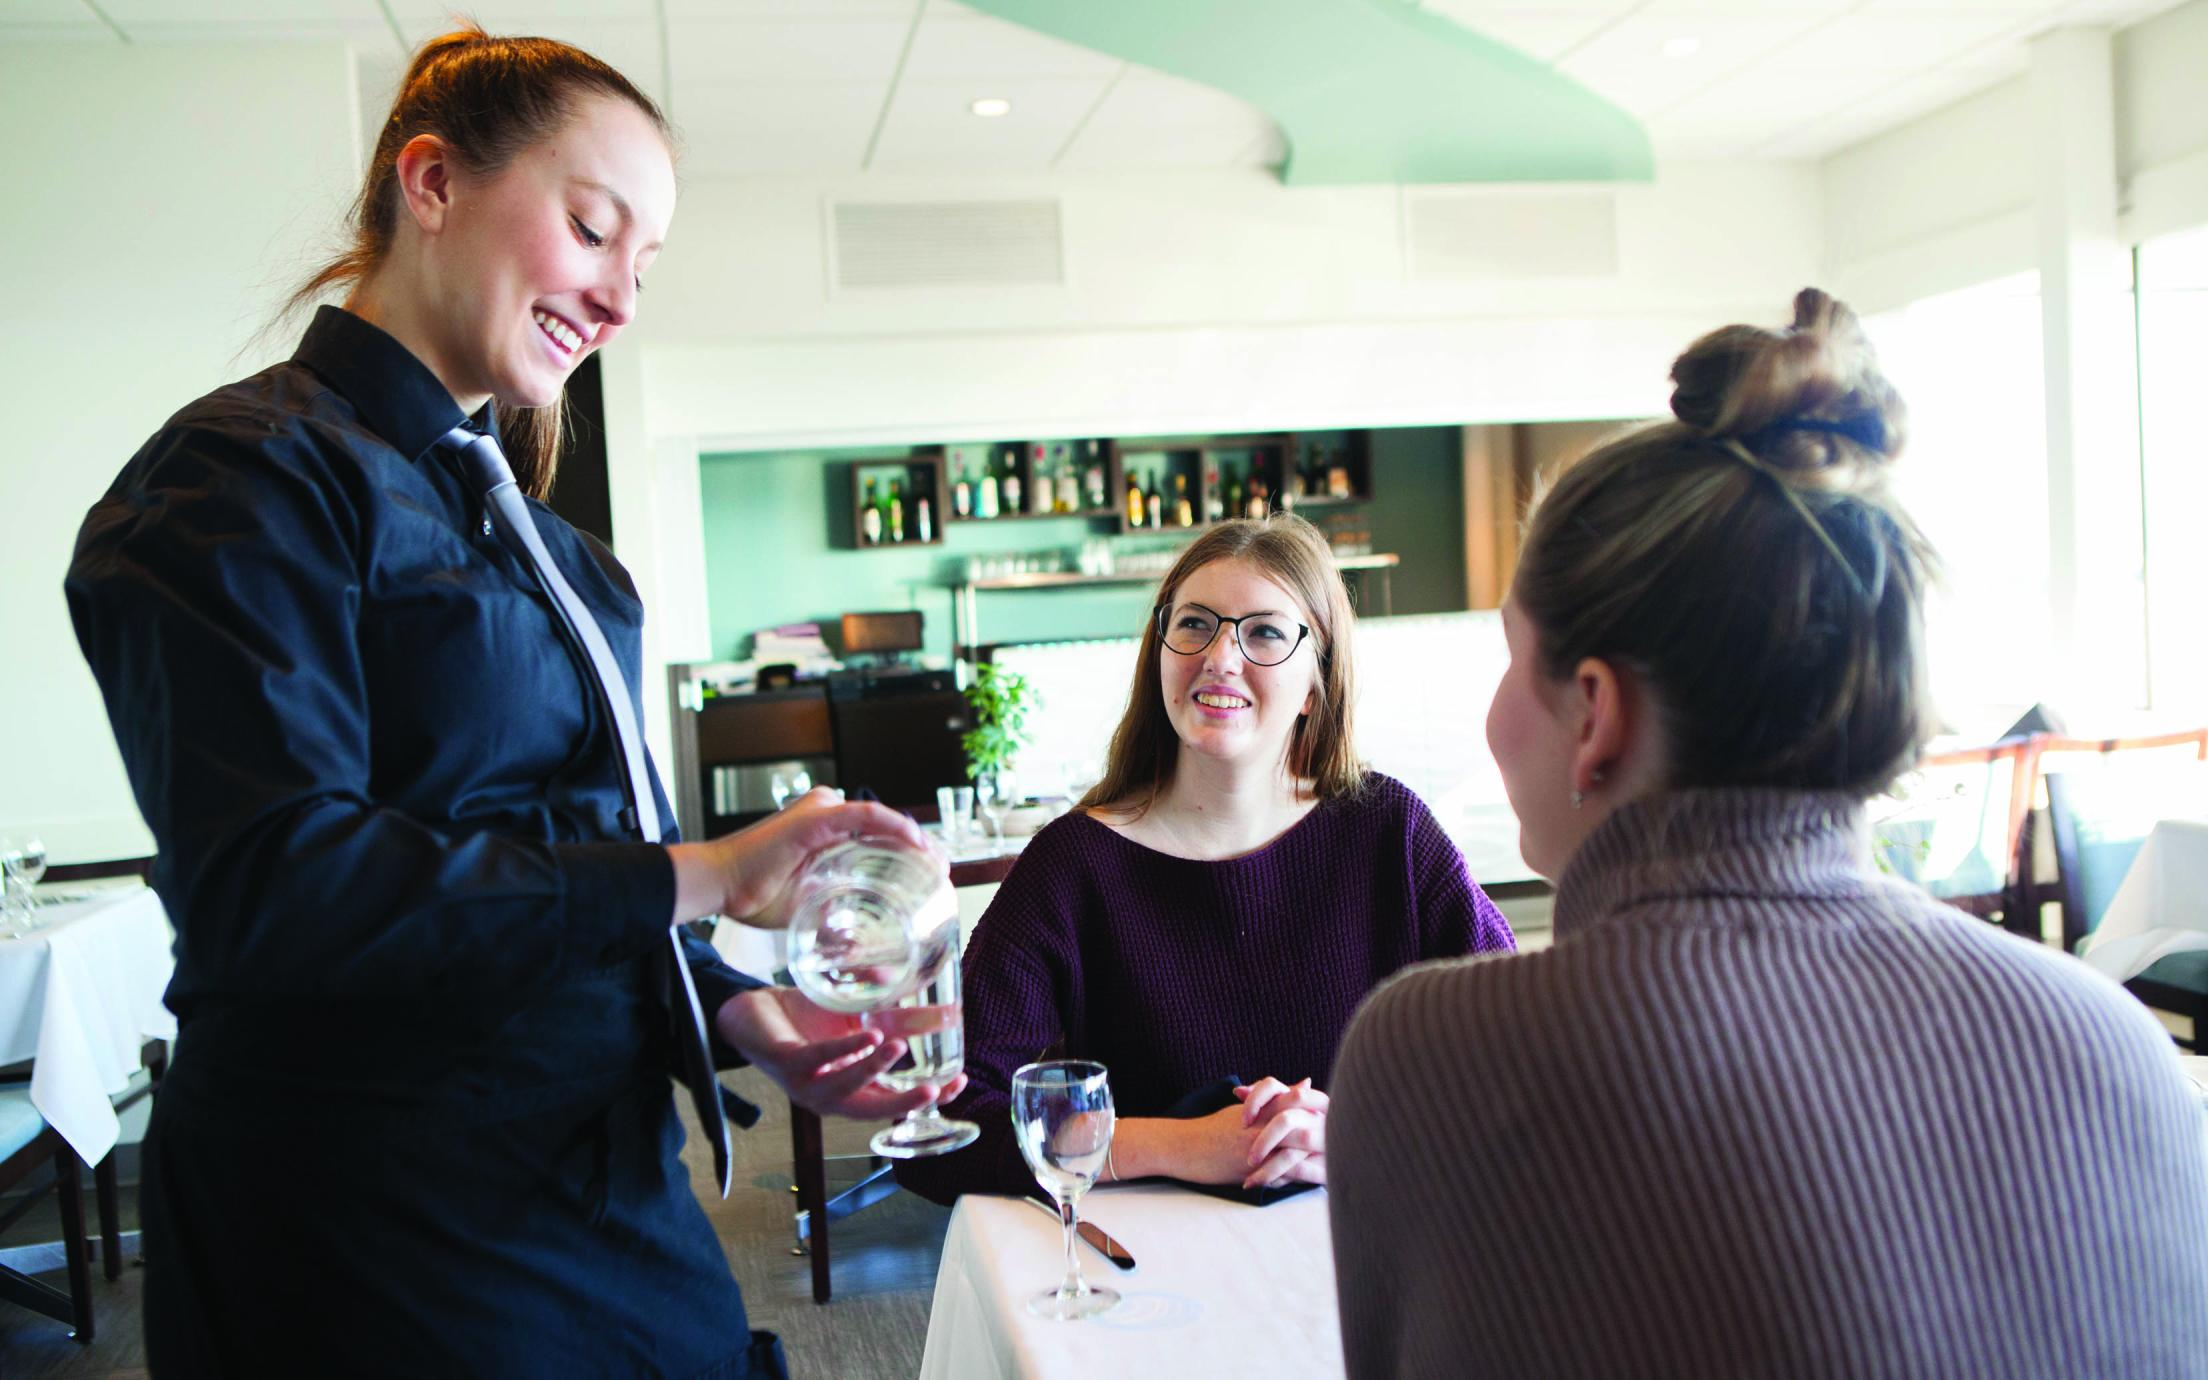 A Student of the Hospitality Management Diploma program serving two women